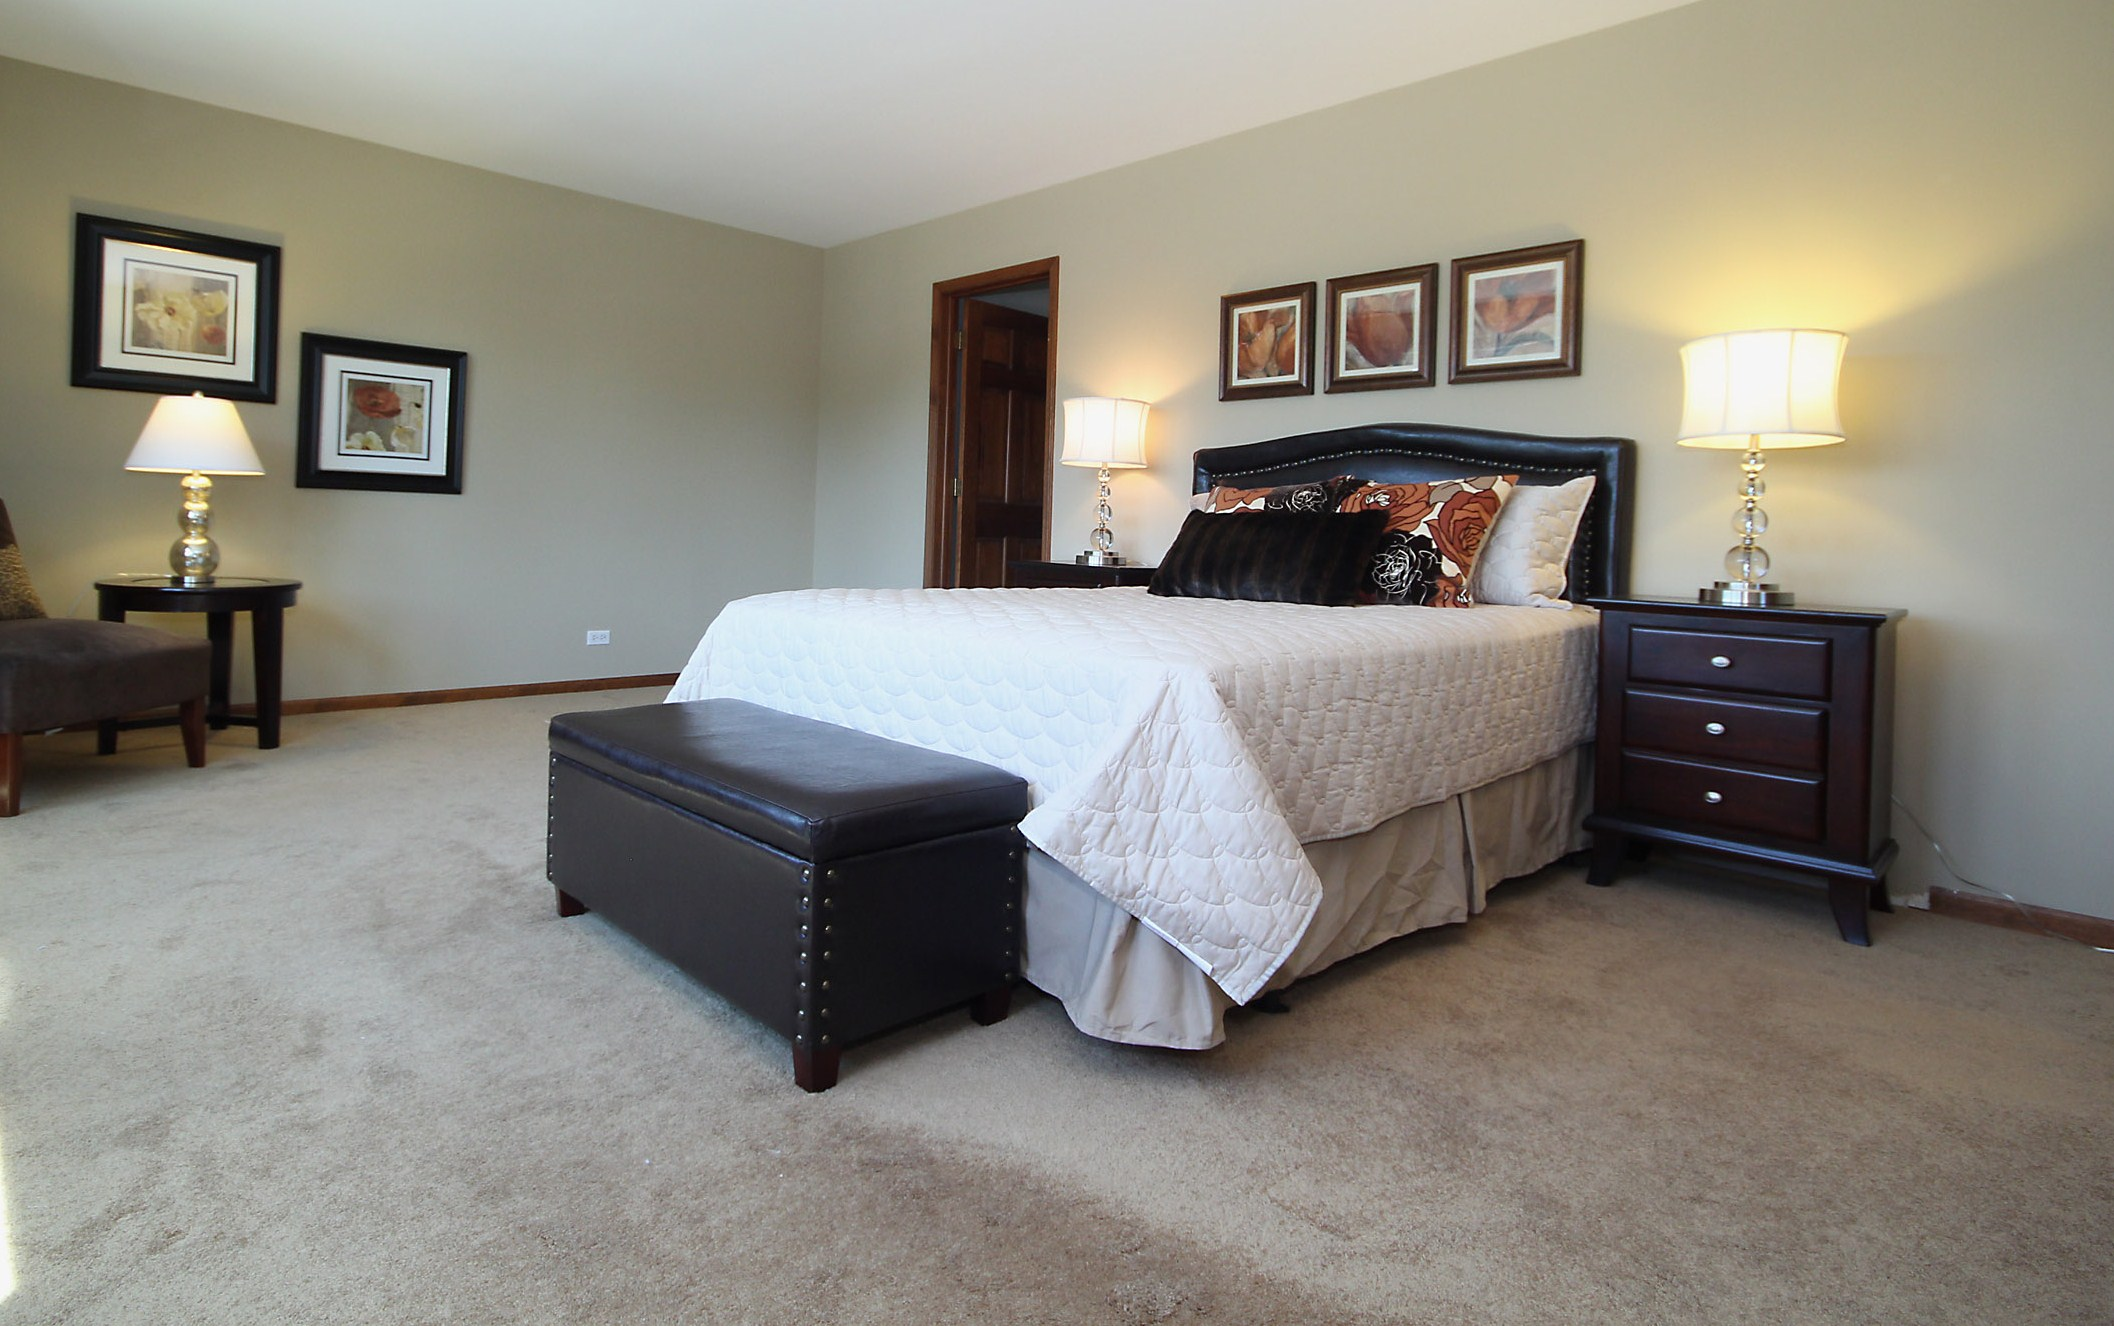 Home Staging Fact or Fiction: Staging is just adding furniture.